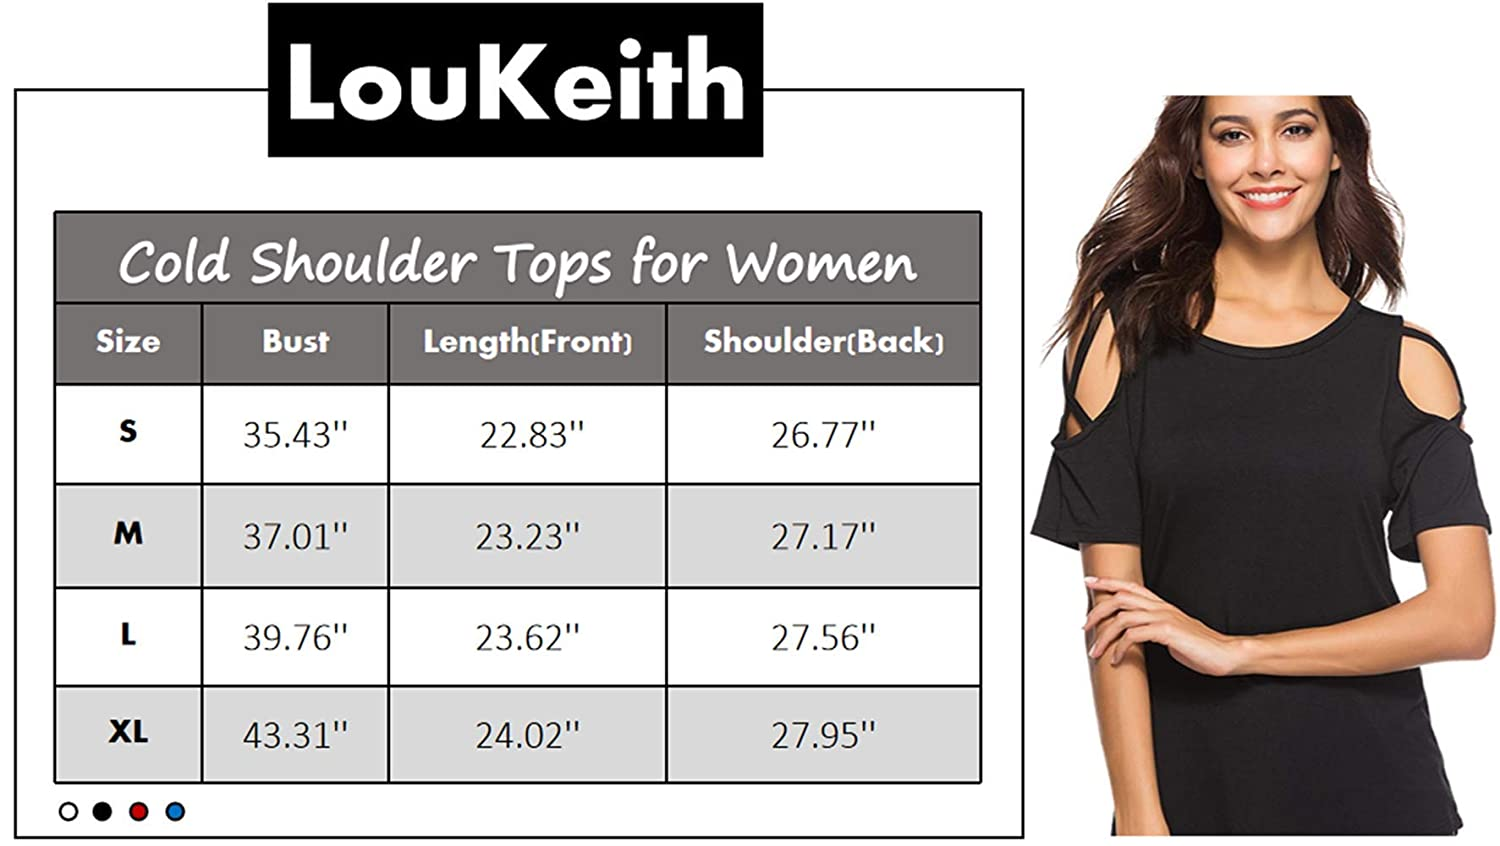 307e768dbc0 LouKeith Womens Tops Cold Shoulder Short Sleeve T Shirts Cotton Loose  Casual Sexy Strappy Tunic Blouses at Amazon Women's Clothing store: